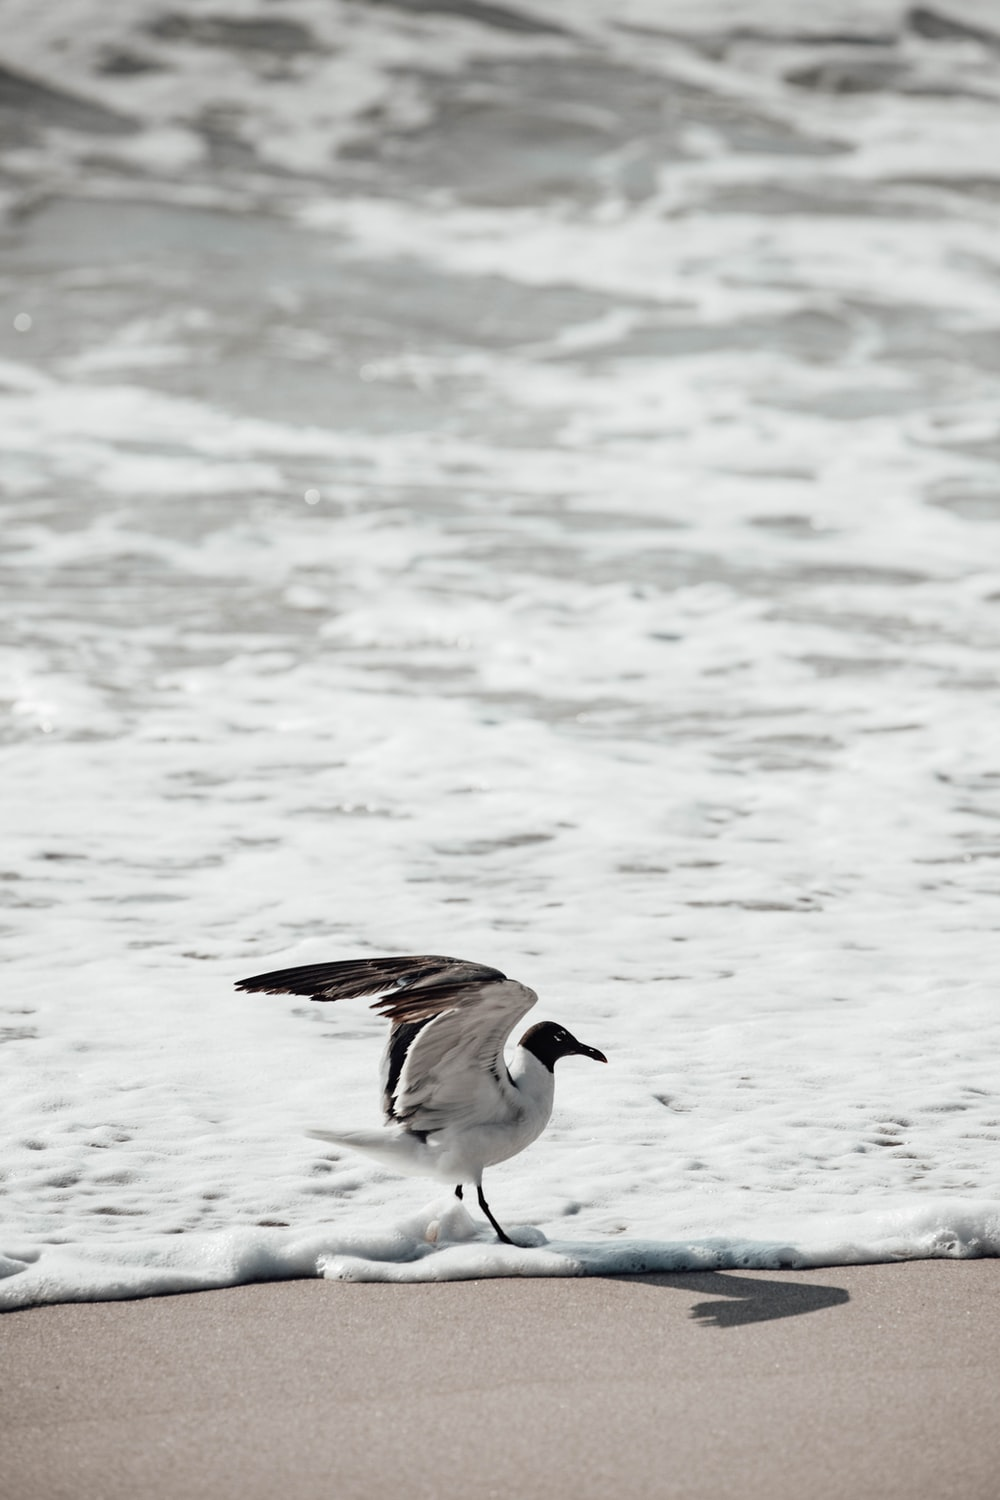 white and brown bird on water during daytime